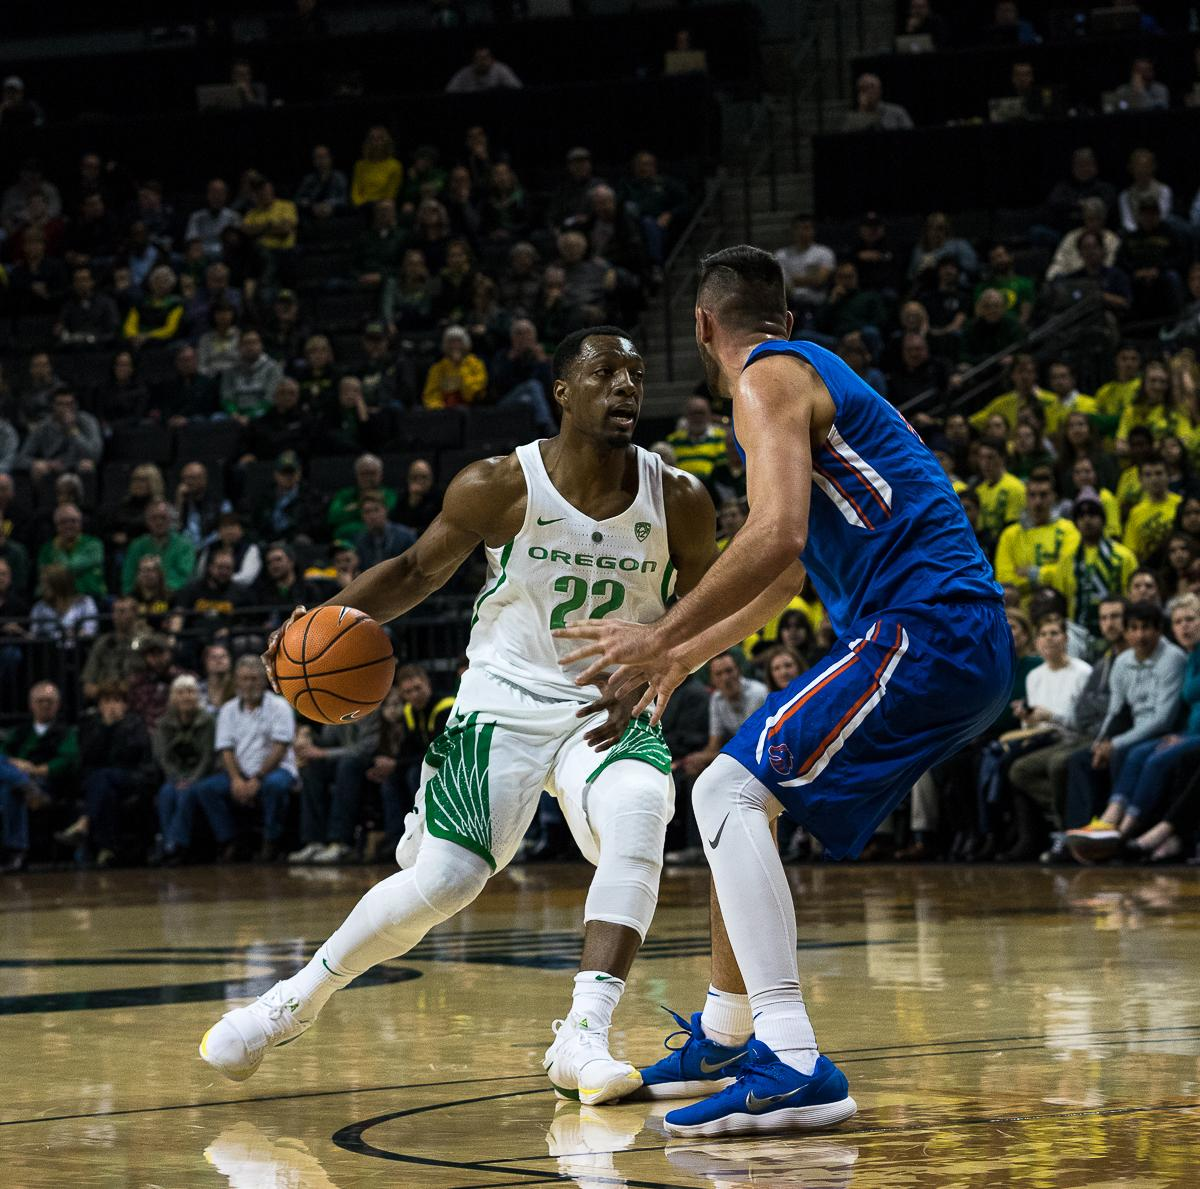 Oregon Duck MiKyle McIntosh (#22) tries to break past Boise State Bronco Zach Haney (#11). The Boise State Broncos defeated the Oregon Ducks 73 – 70 at Matthew Knight Arena in Eugene, Ore., on December 1, 2017. Photo by Kit MacAvoy, Oregon News Lab